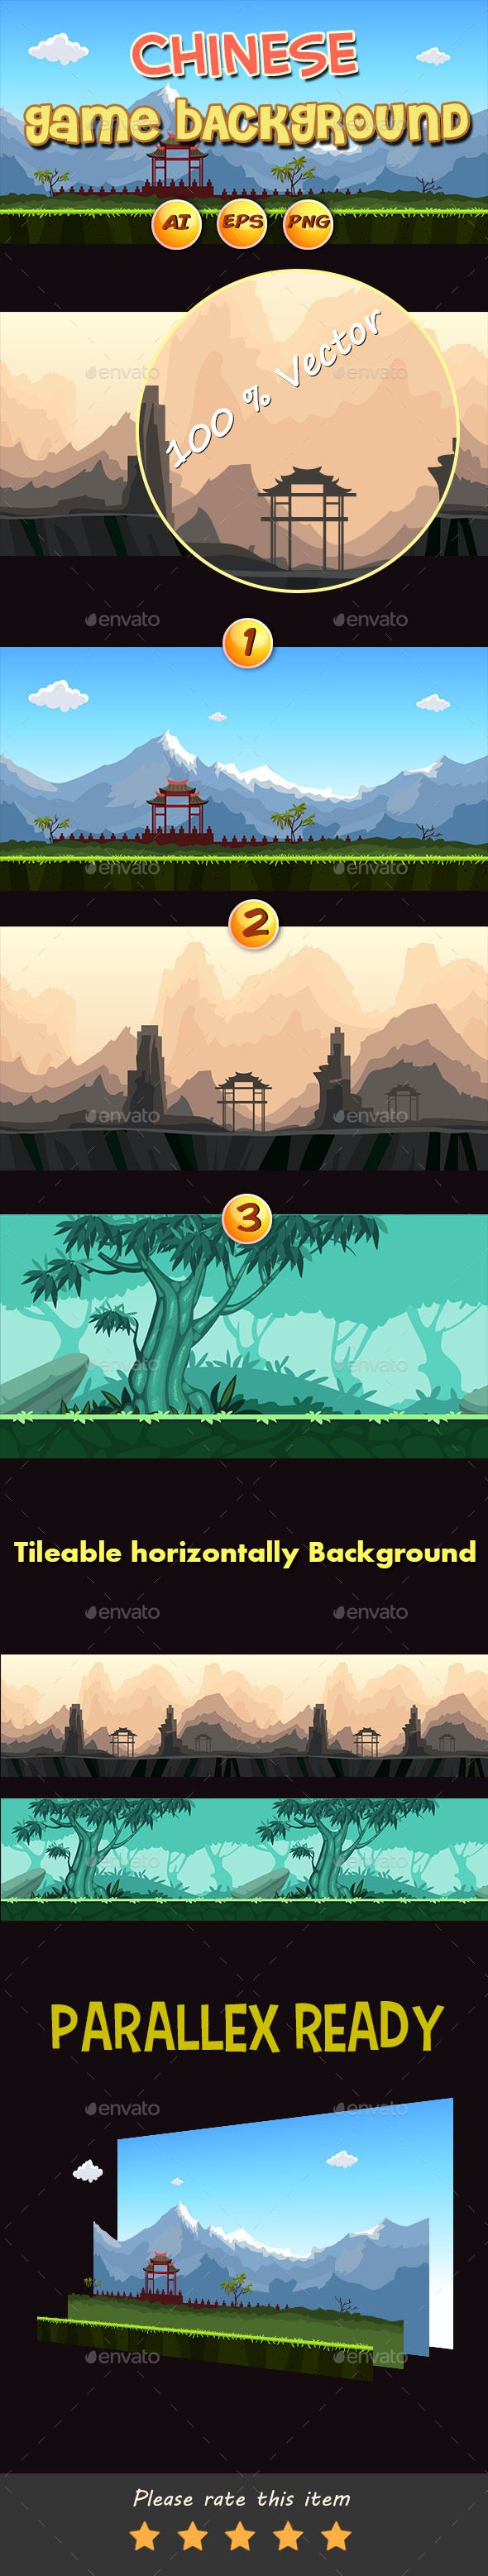 Chinese Game Background Download here: https://graphicriver.net/item/chinese-game-background/11825753?ref=KlitVogli